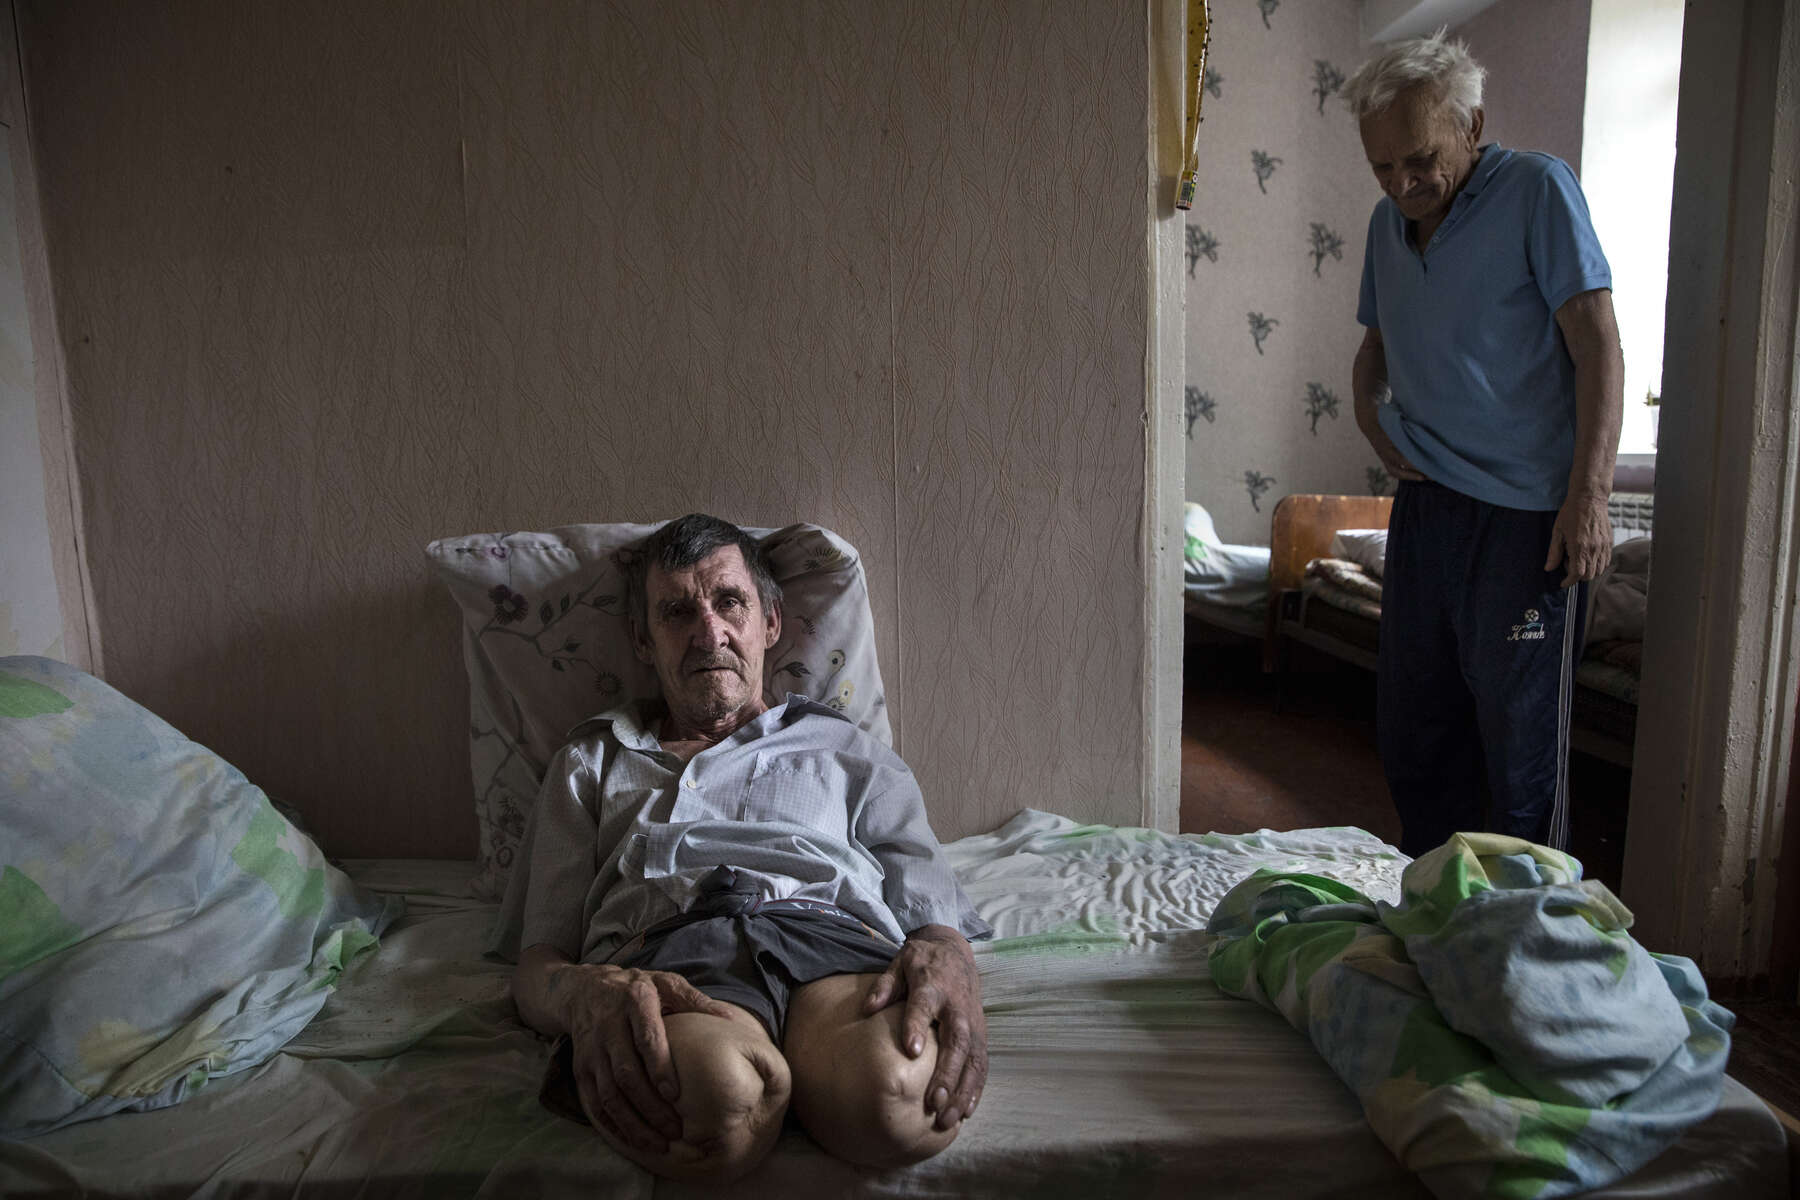 Ivan Ivanovich, age 65, is a double amputee but has no memory of how he lost his legs, he was brought to the Druzhkovka nursing home by healthcare workers. Ivan stated  {quote} No legs, No memory - I am not doing well.{quote}He was abandoned by his family, his daughter lives in Russia. He used to work as a coal miner. The nursing home facility takes care of many elderly who are left behind, and poverty stricken due to the war.